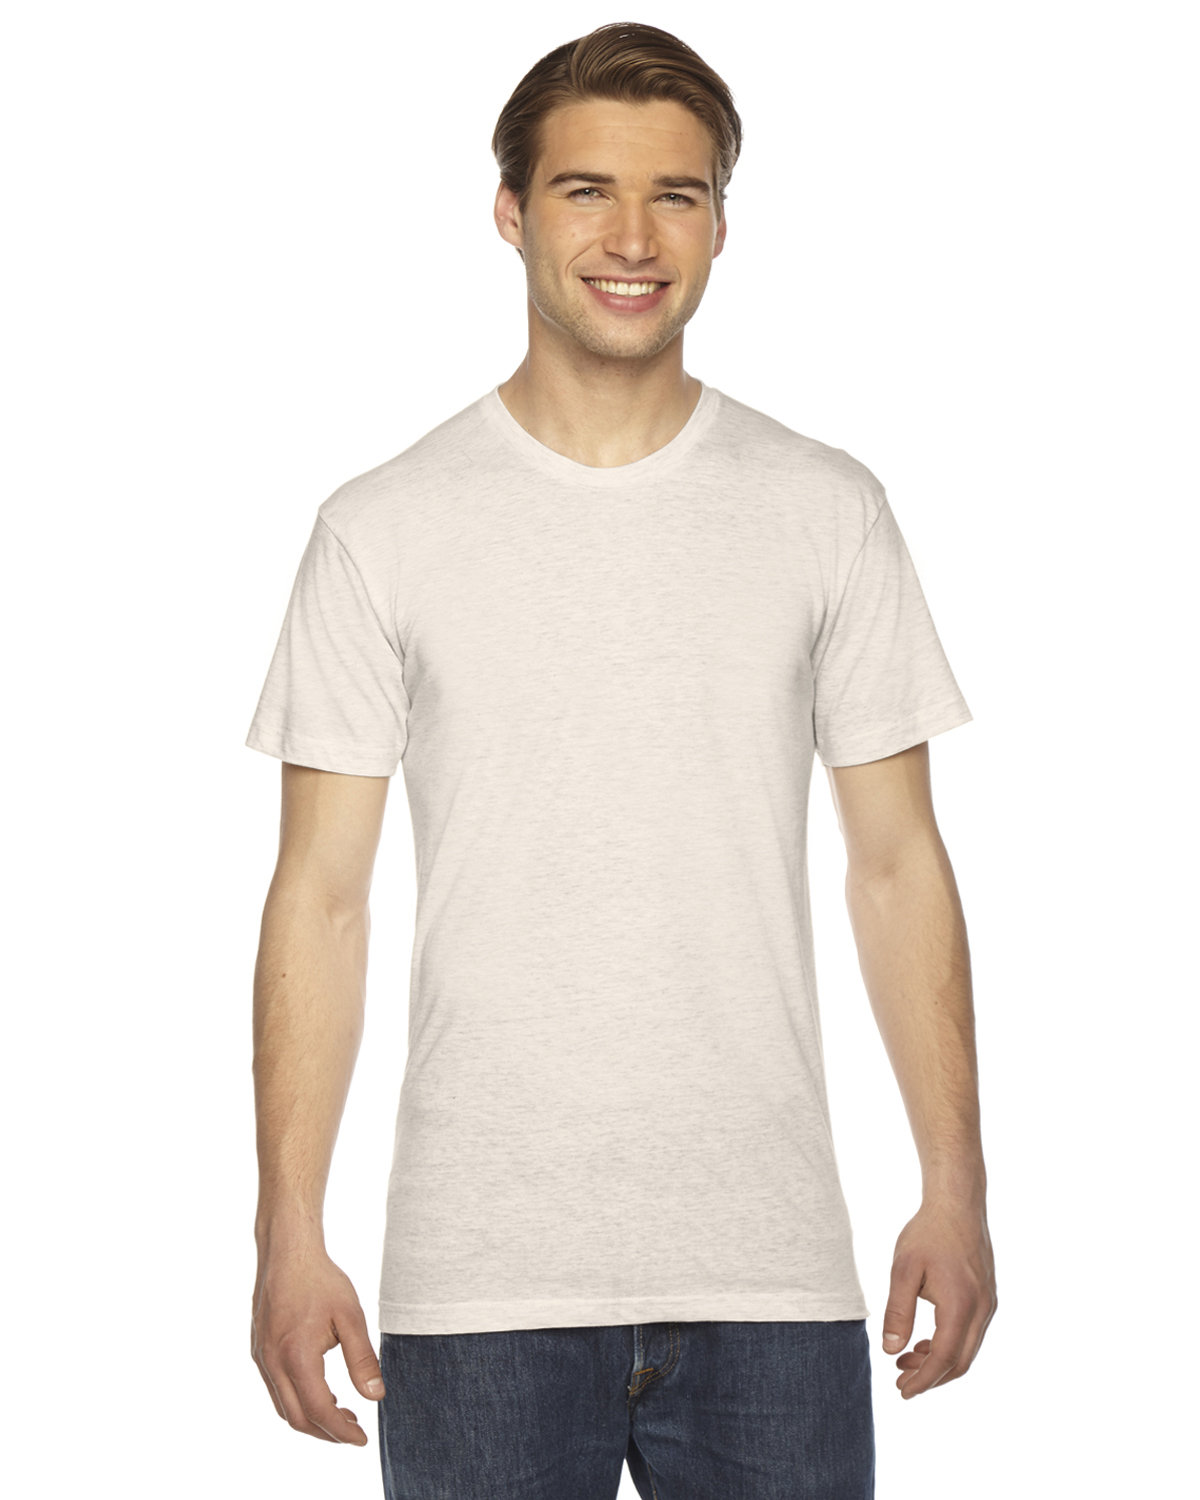 614b80b77f8 Front Back Side · Gallery View Download HiRes Design Studio. TR401 American  Apparel Unisex Triblend USA Made Short-Sleeve Track T-Shirt